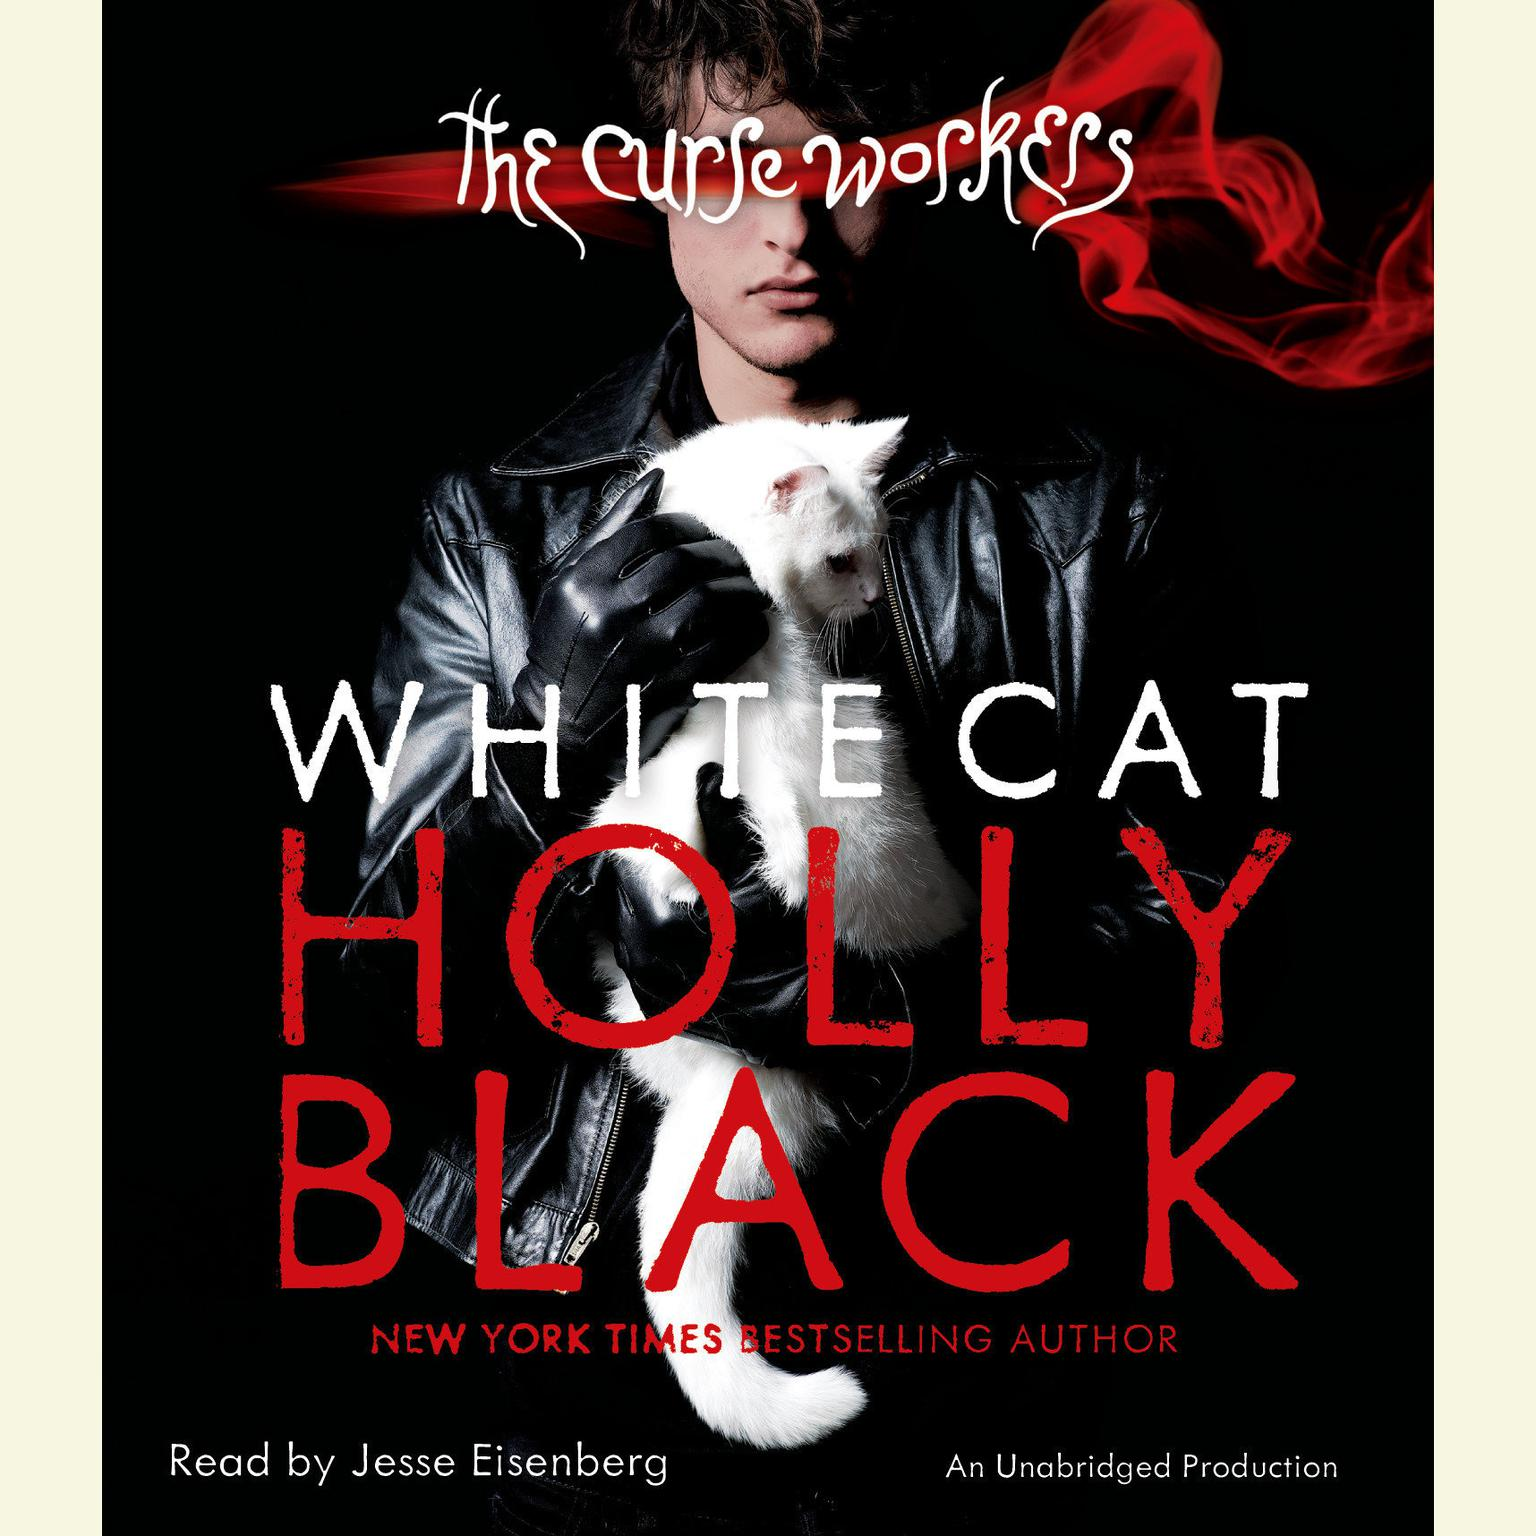 Printable White Cat: The Curse Workers, Book One Audiobook Cover Art